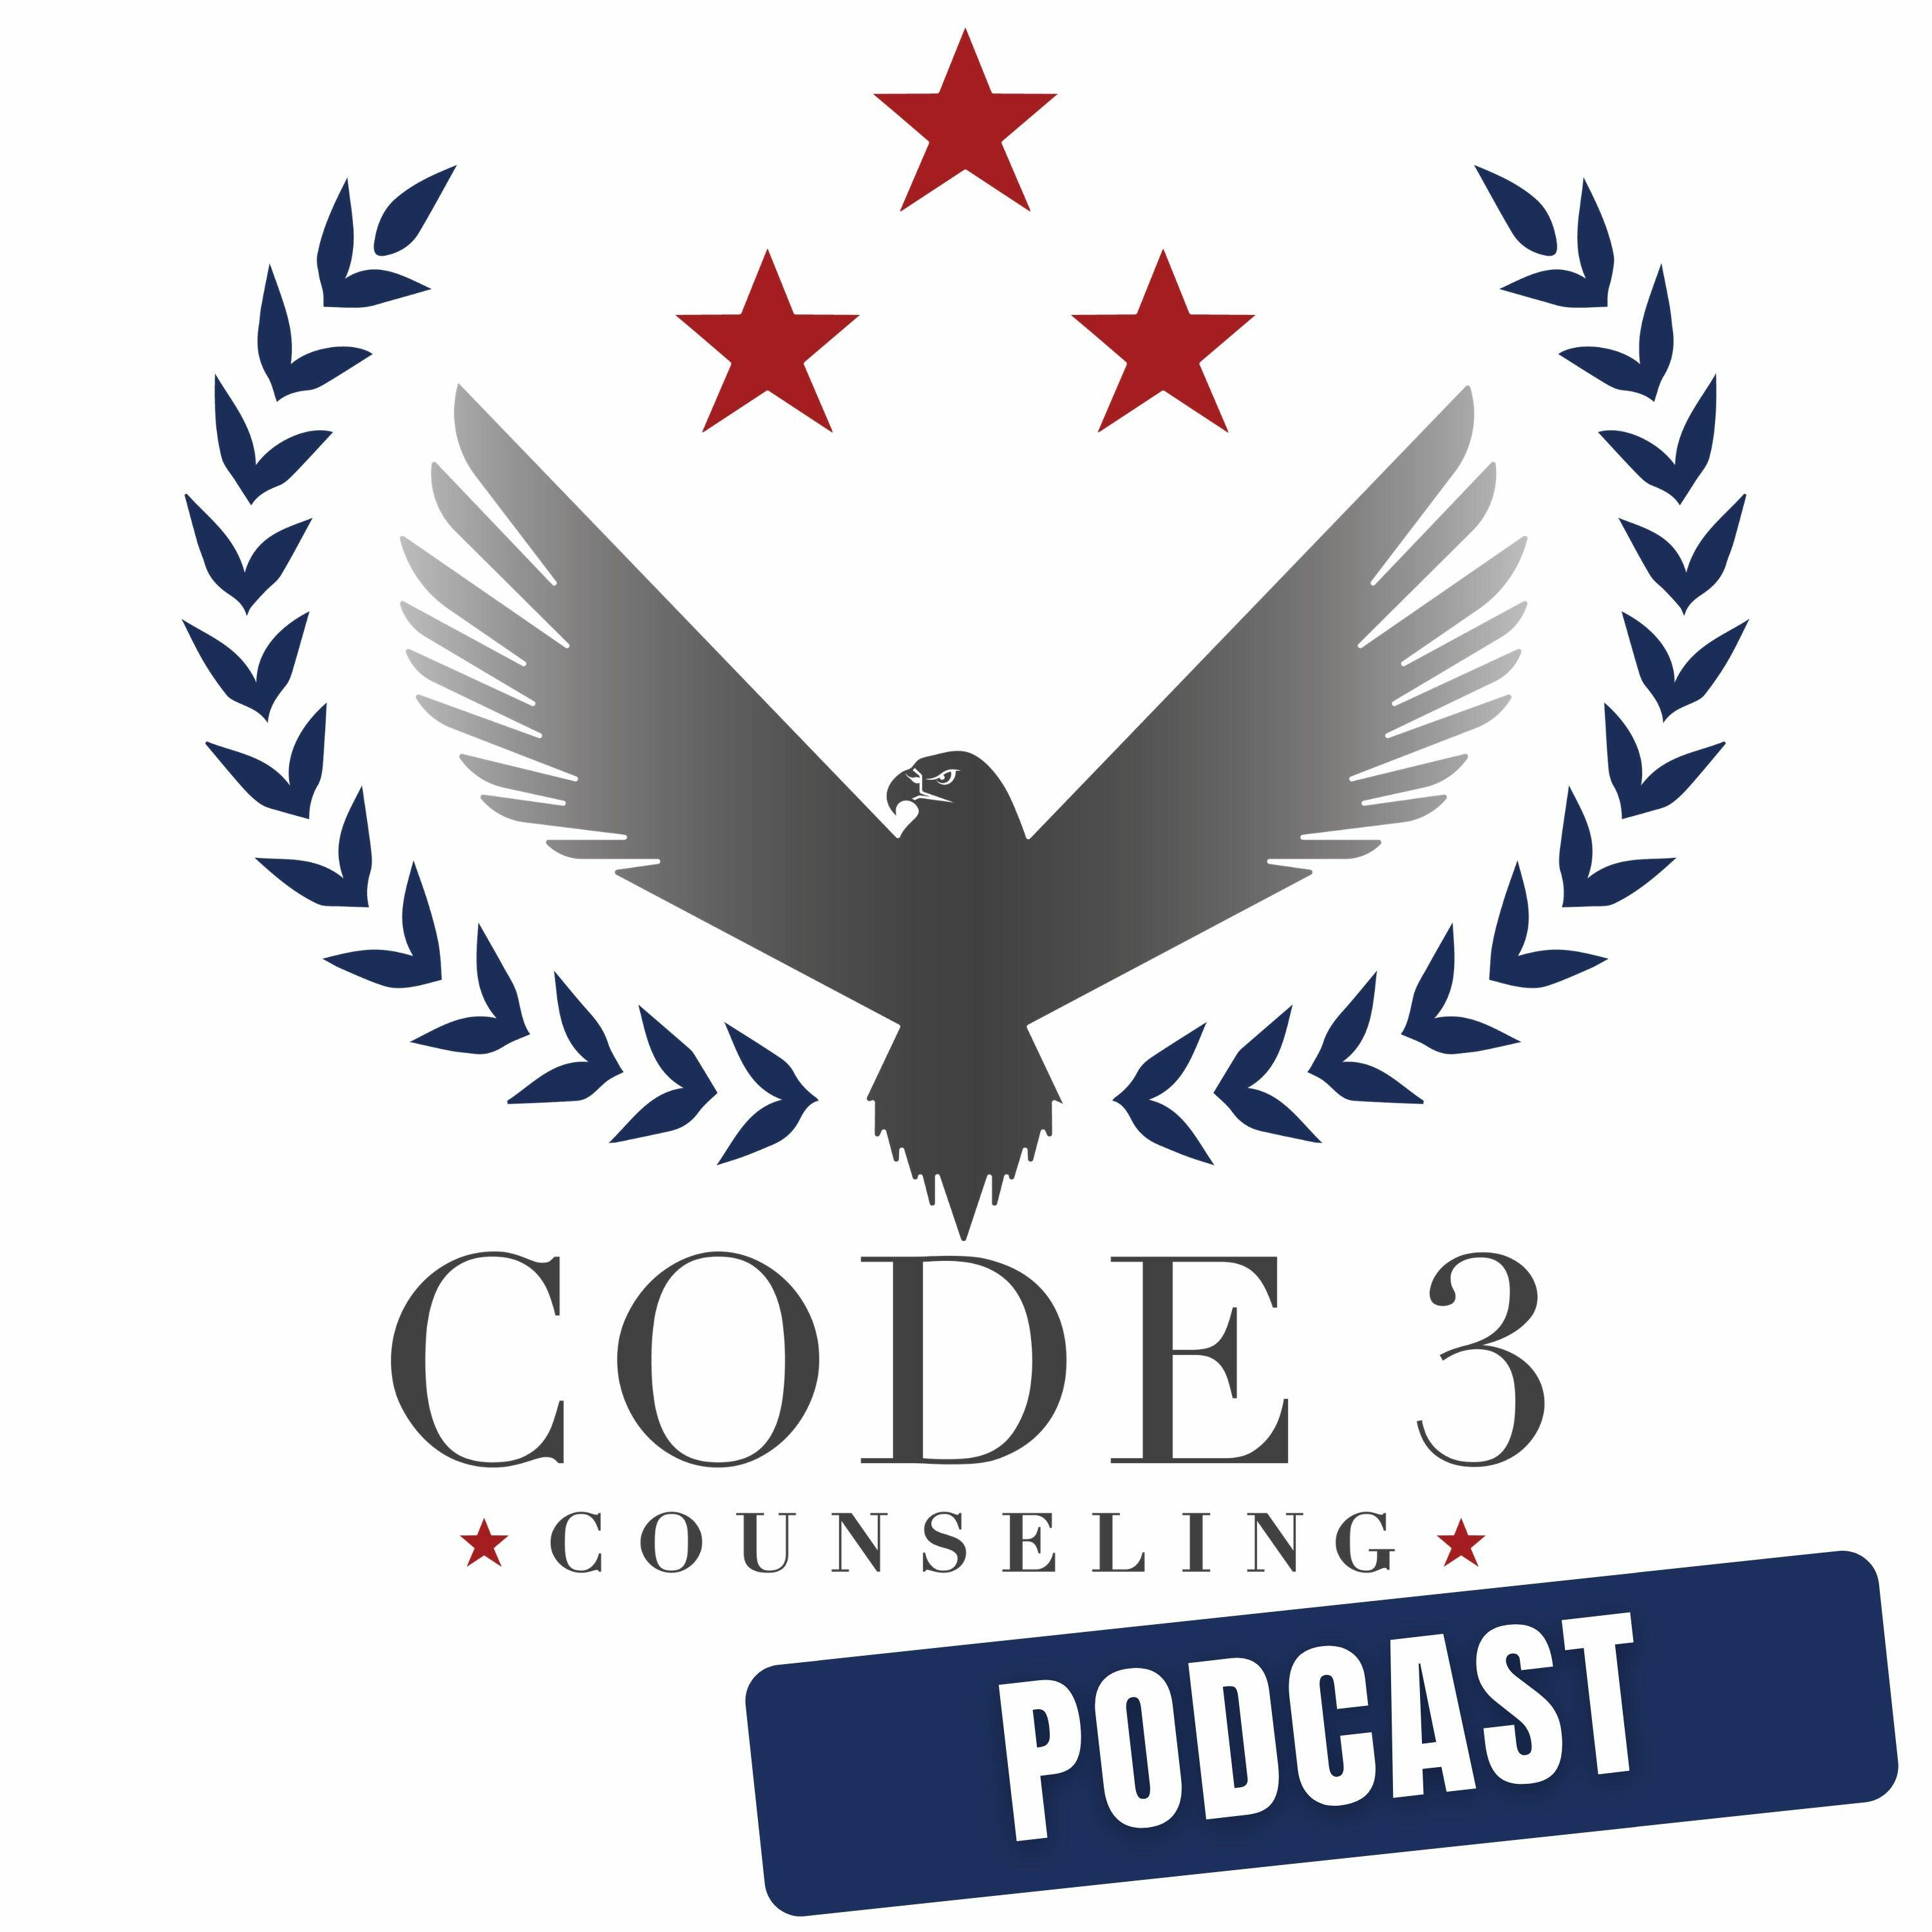 Code 3 Counseling Podcast